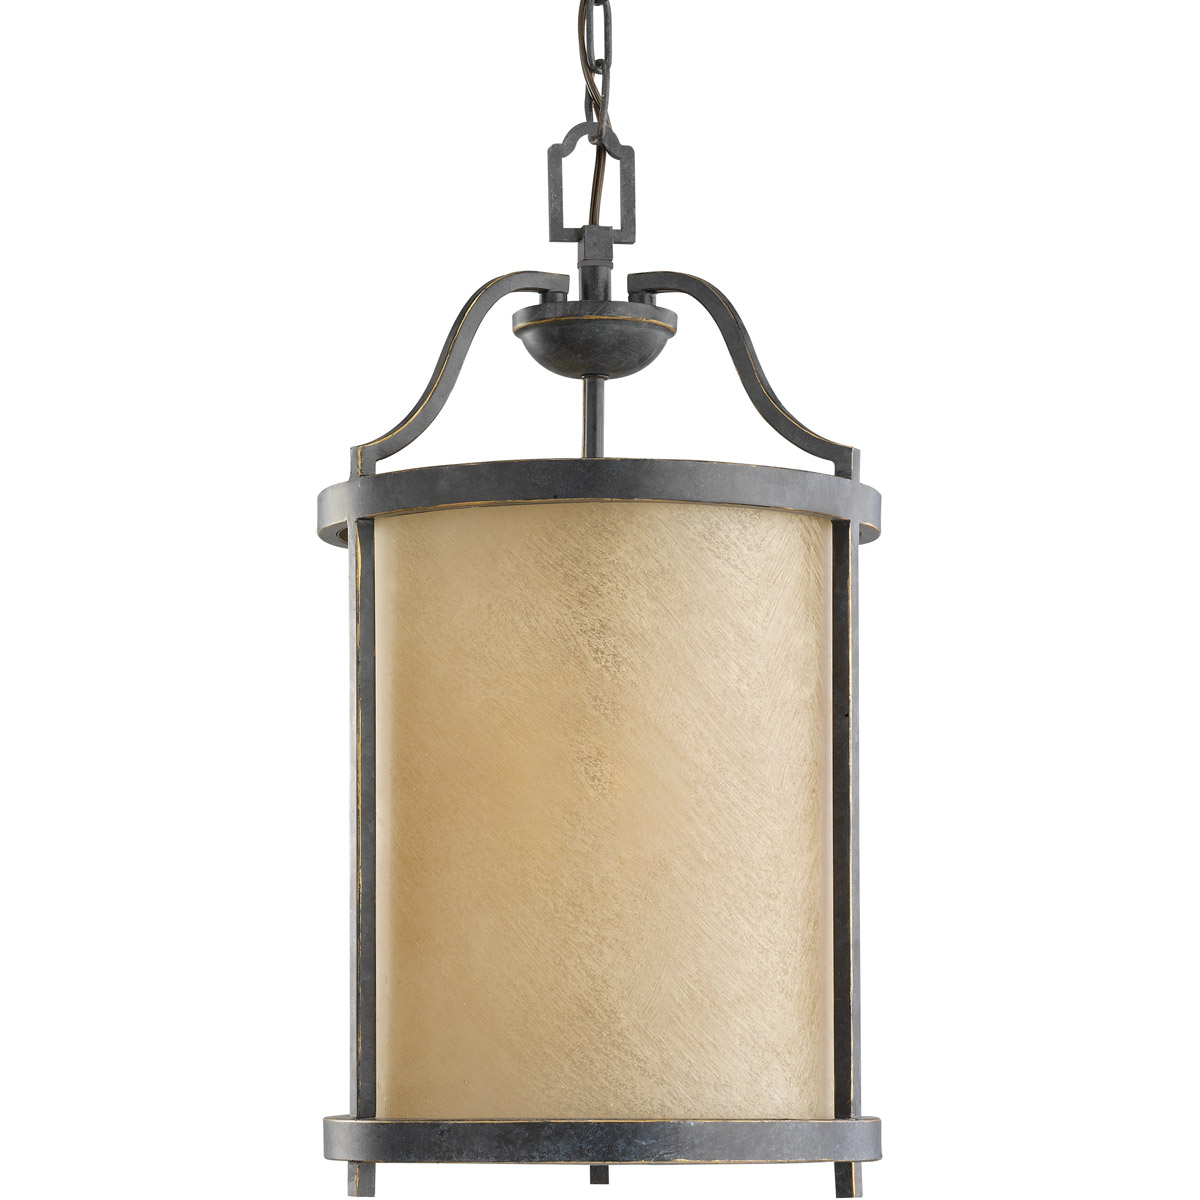 Sea Gull Lighting Roslyn 1 Light Pendant in Flemish Bronze 51520-845